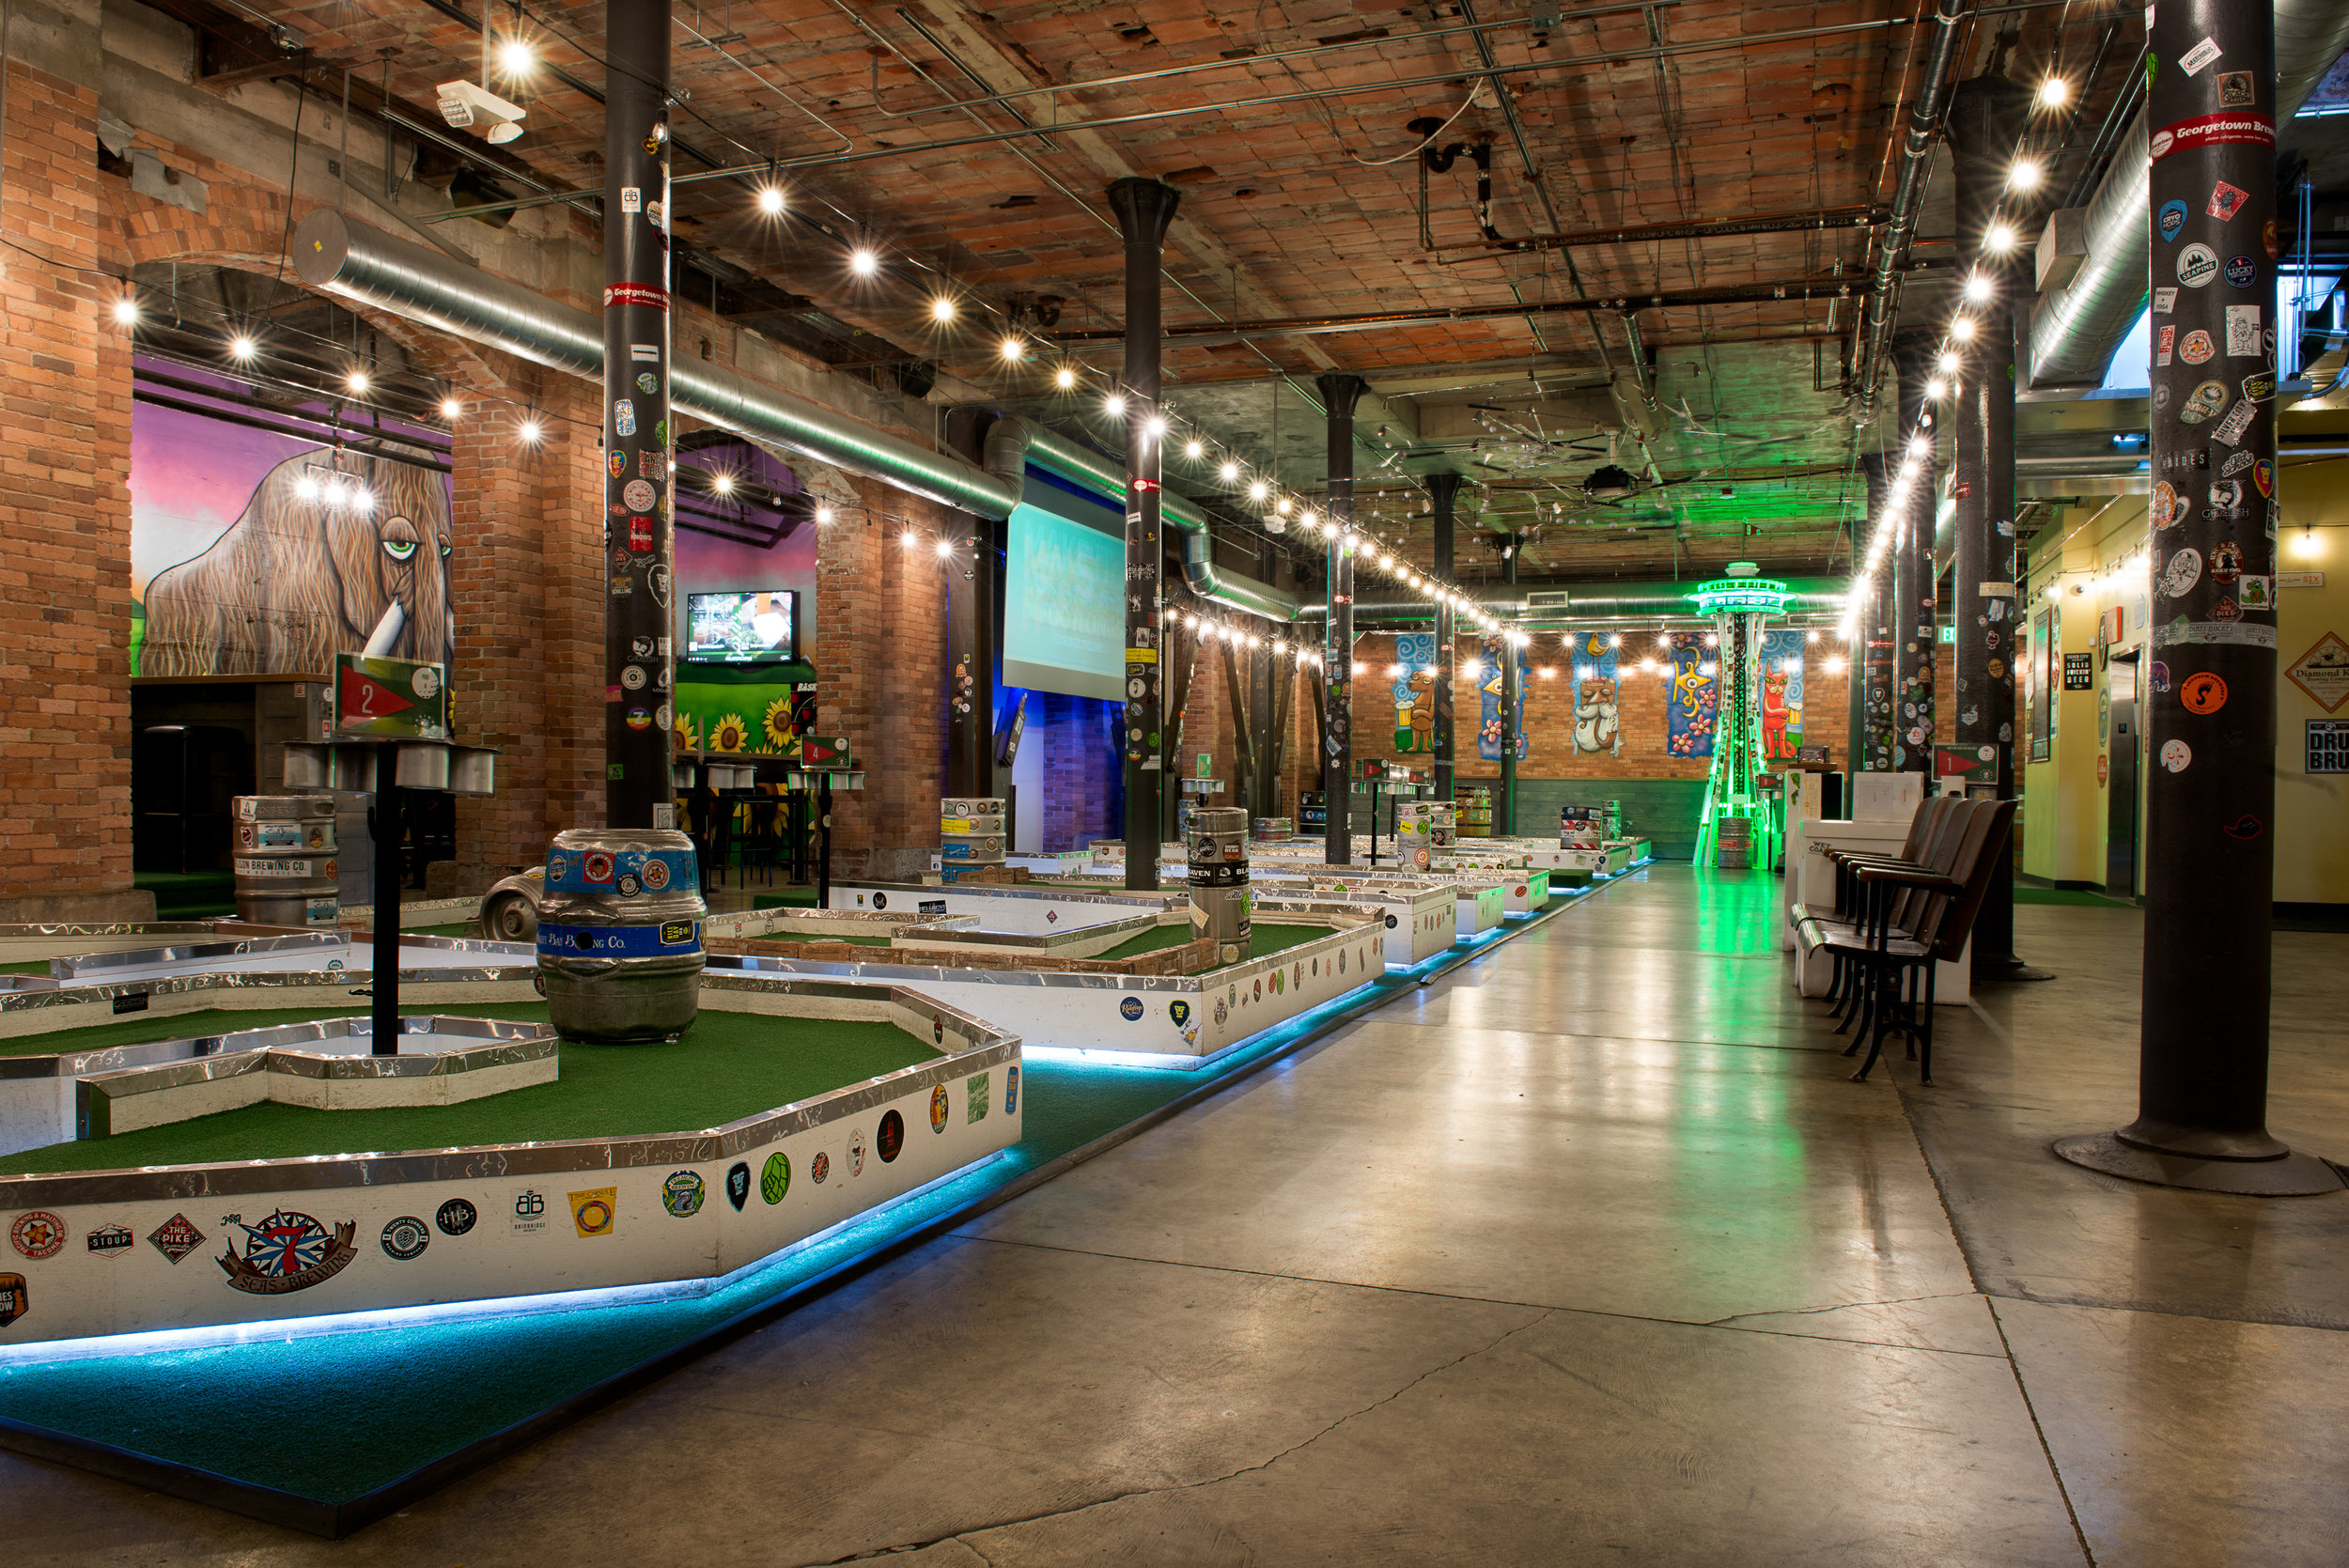 ABOVE: The miniature golf room with historic columns and high ceilings that was previously an electrical substation.  BELOW: Semi-private party rooms surround the miniature golf area and give new life to historic areaways below the sidewalk.